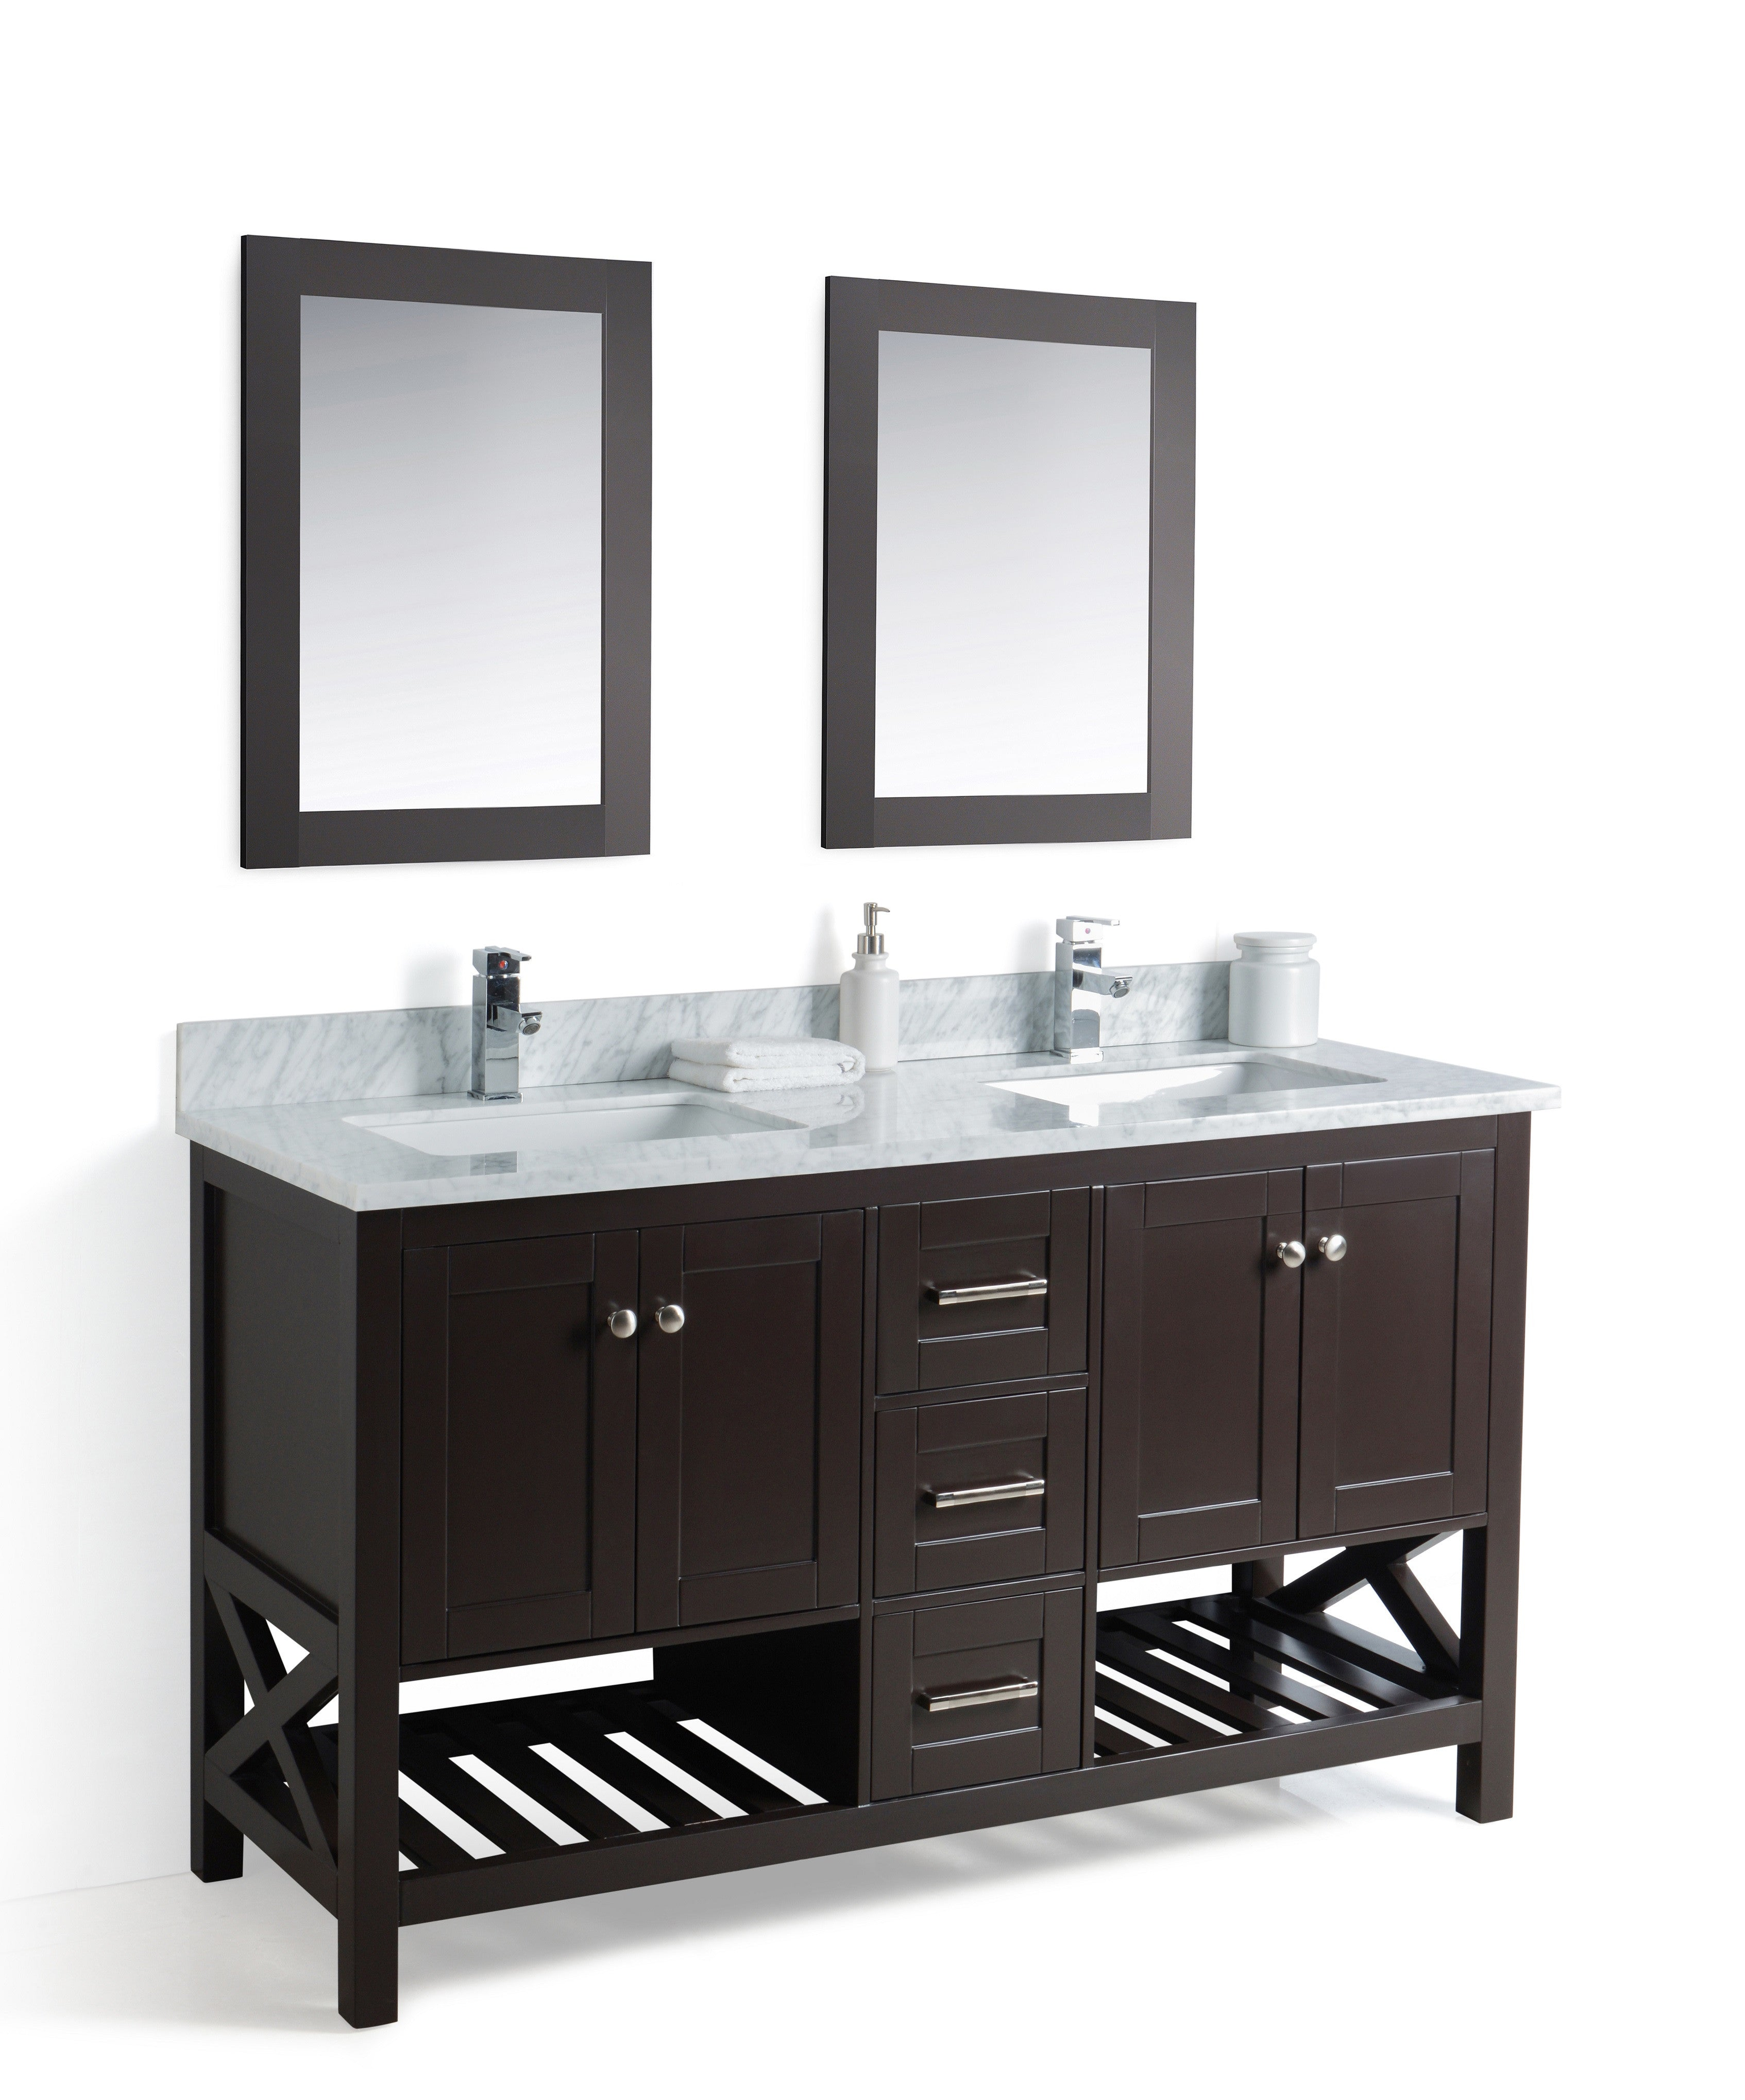 Taiya Bathroom Vanity in Espresso - 60 Inch - Double Sink – Broadway ...